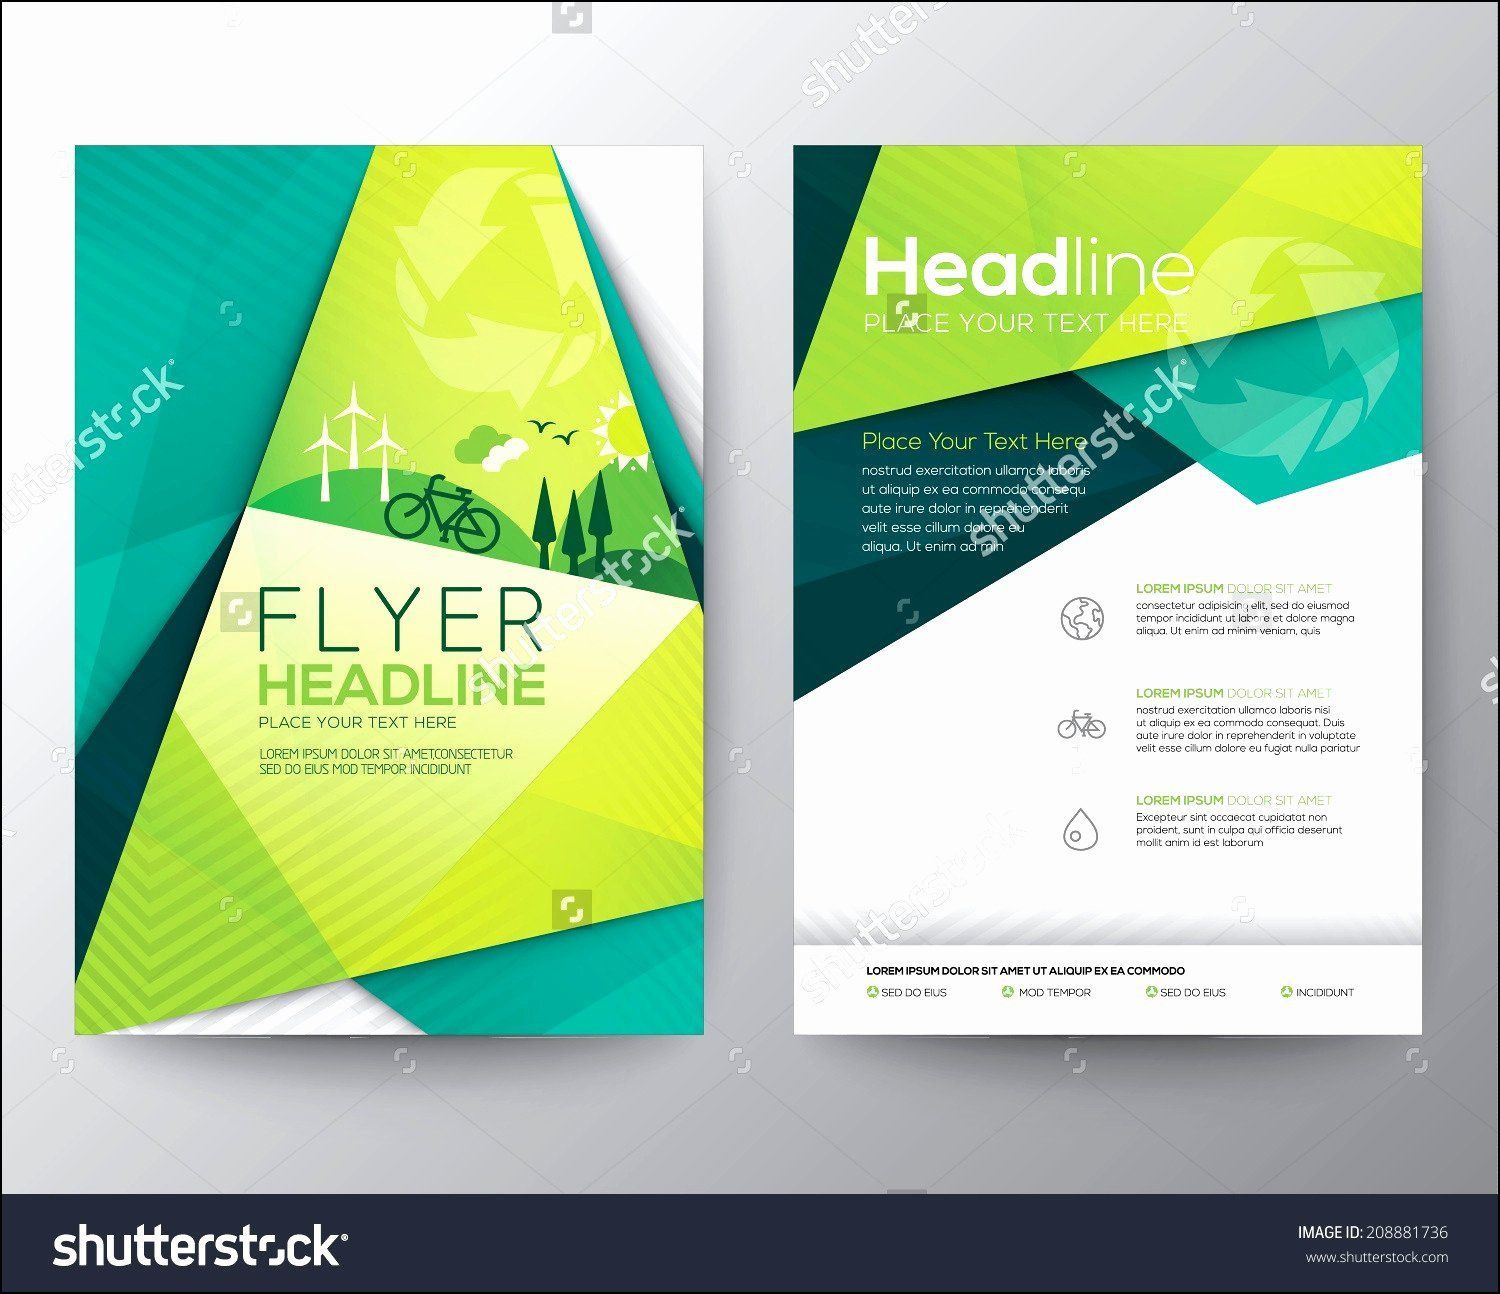 004 Amazing Photoshop Brochure Template Psd Free Download High Resolution Full